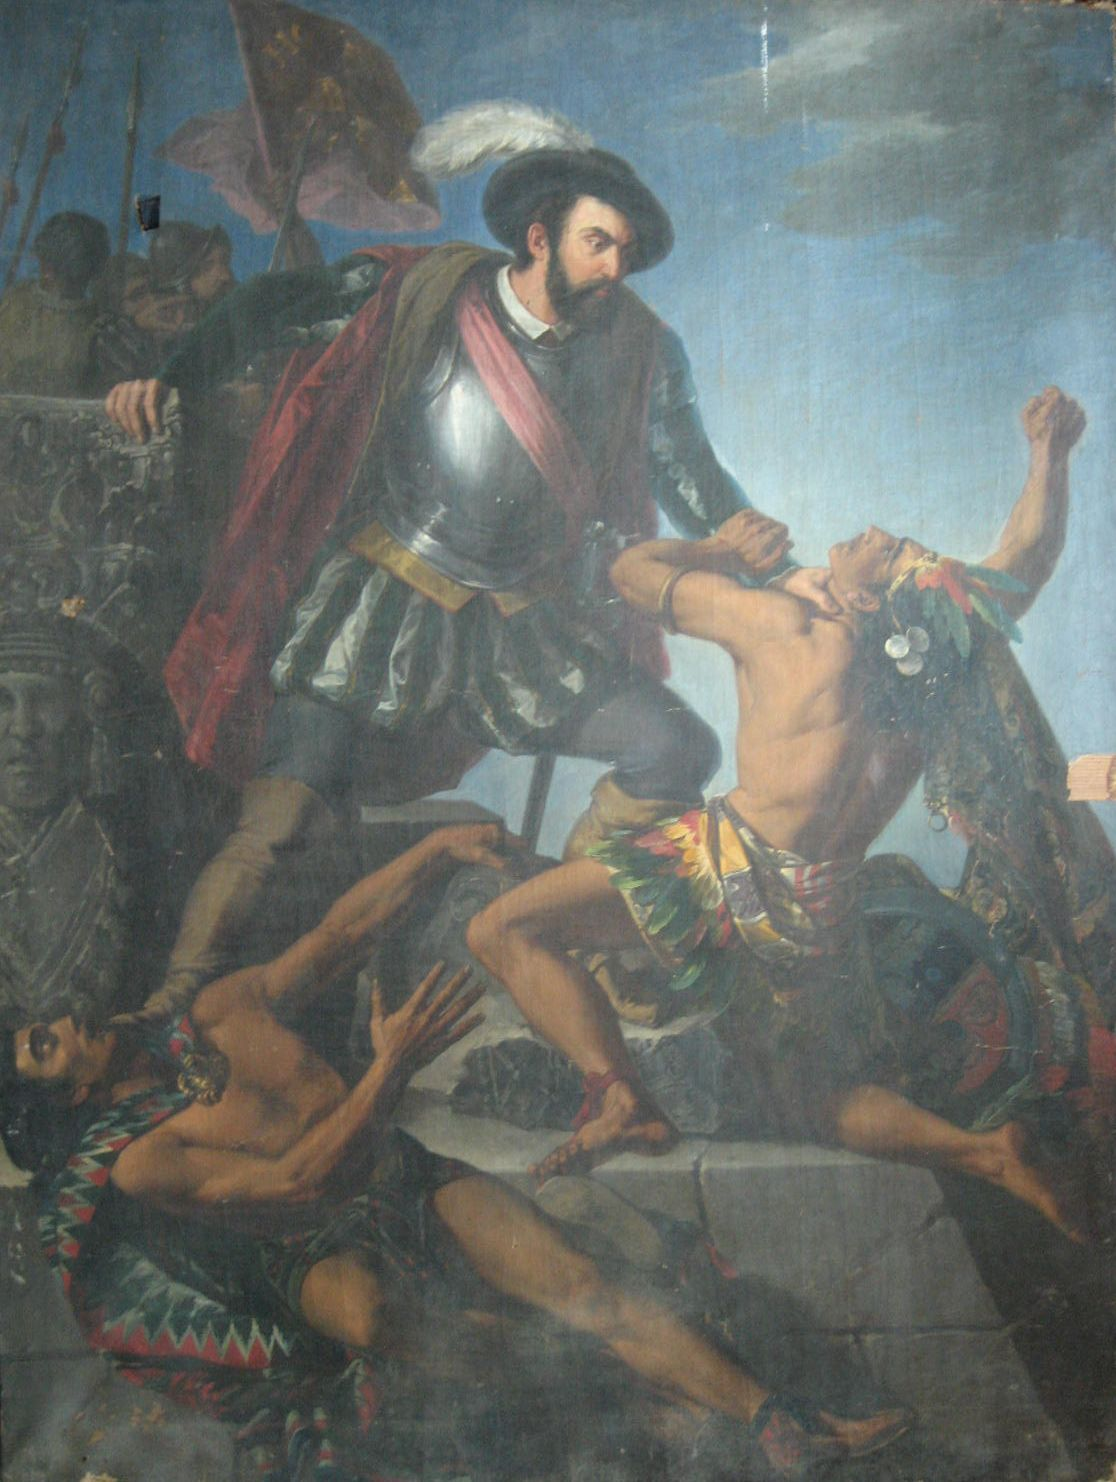 a biography of hernan cortes Fascinating facts about the man who tried to bring down the aztecs in this hernan cortez biography who was hernan cortes and what drove him to conquer.